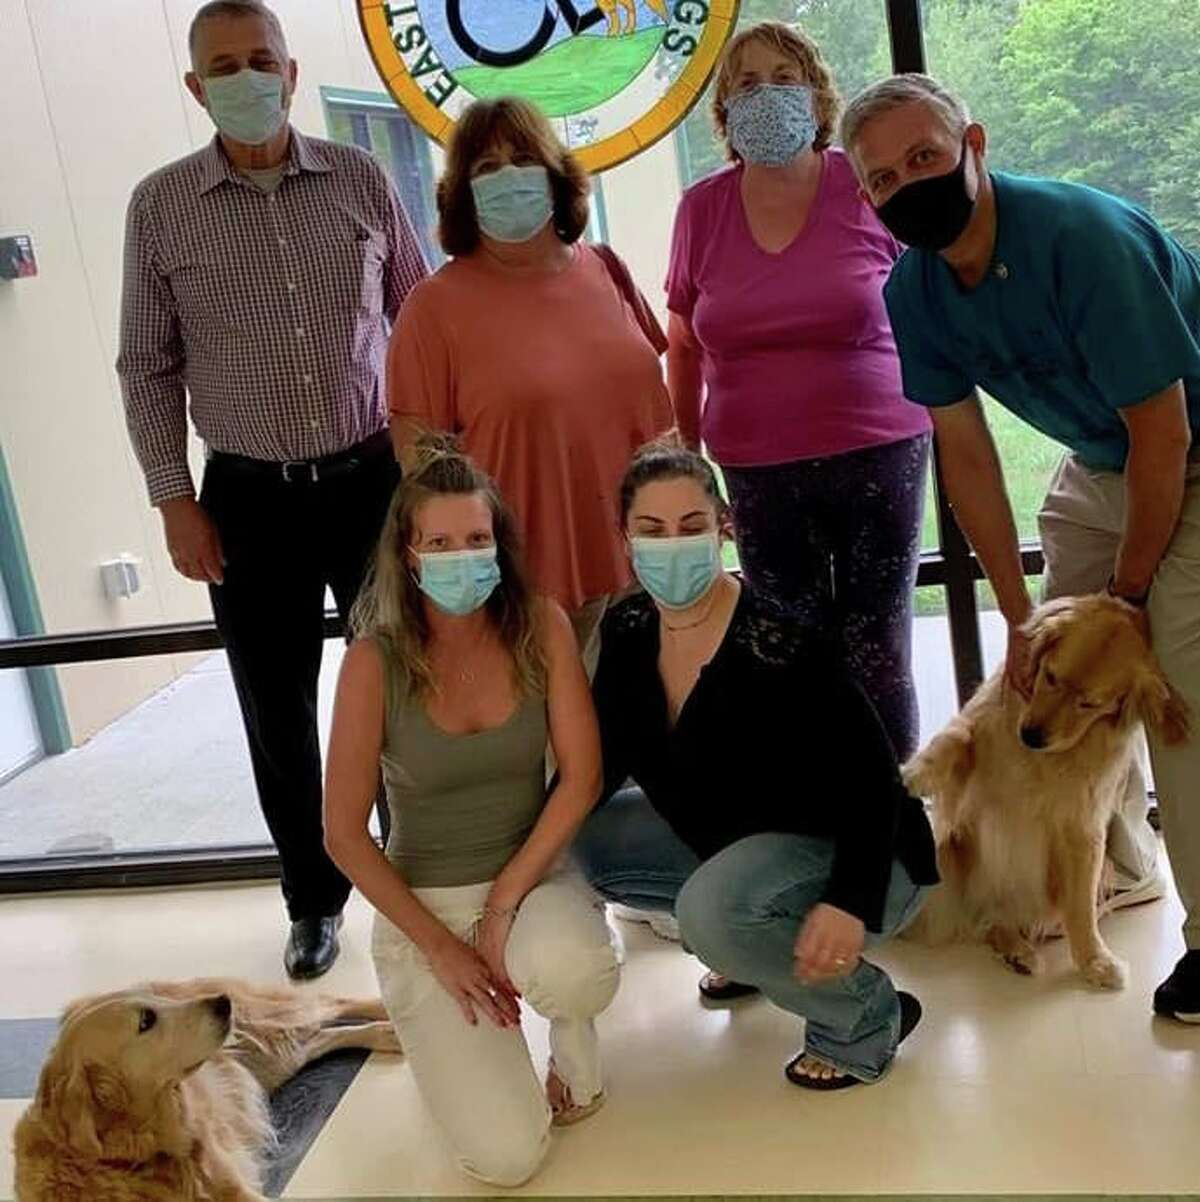 Dale Picard, ECAD's co-founder and executive director, and ECAD staff members celebrate the installation of his not-for- profit organization that trains and places Service Dogs as a new Lions Club Branch with members of the Barkhamsted and Terryville Lions Club.